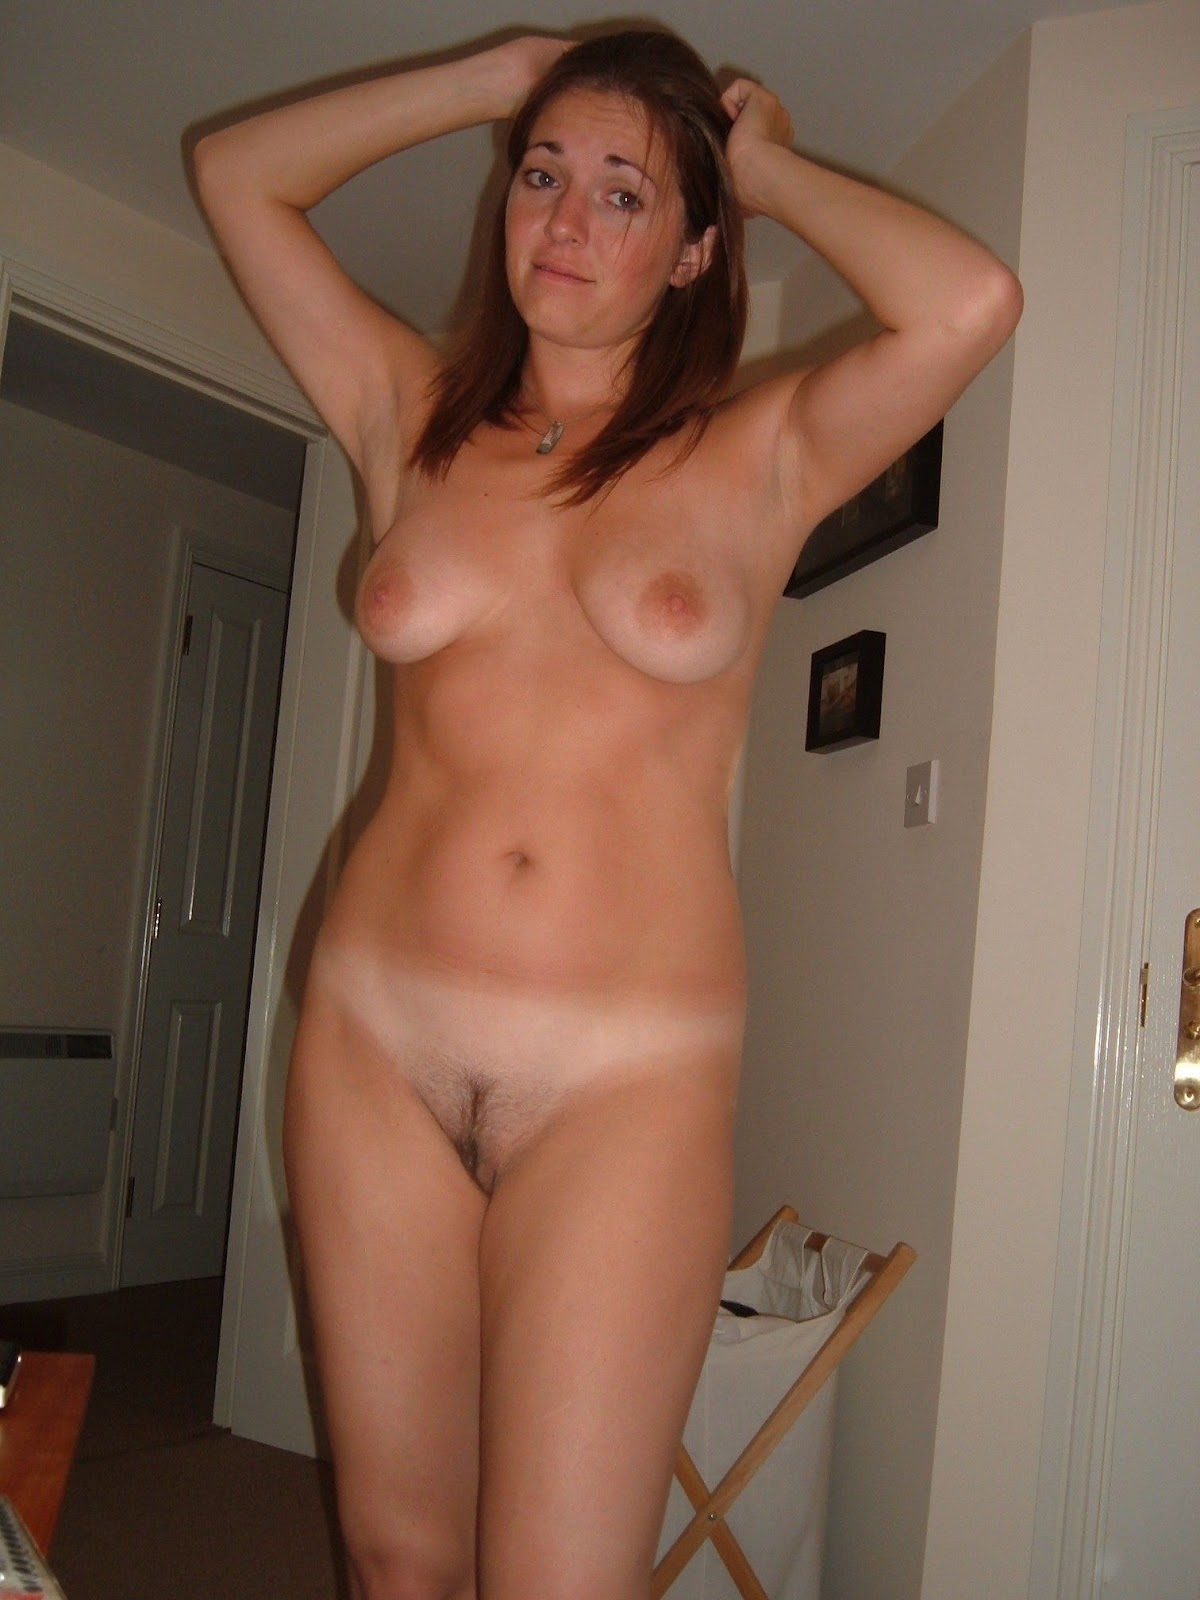 Naked Adult Females